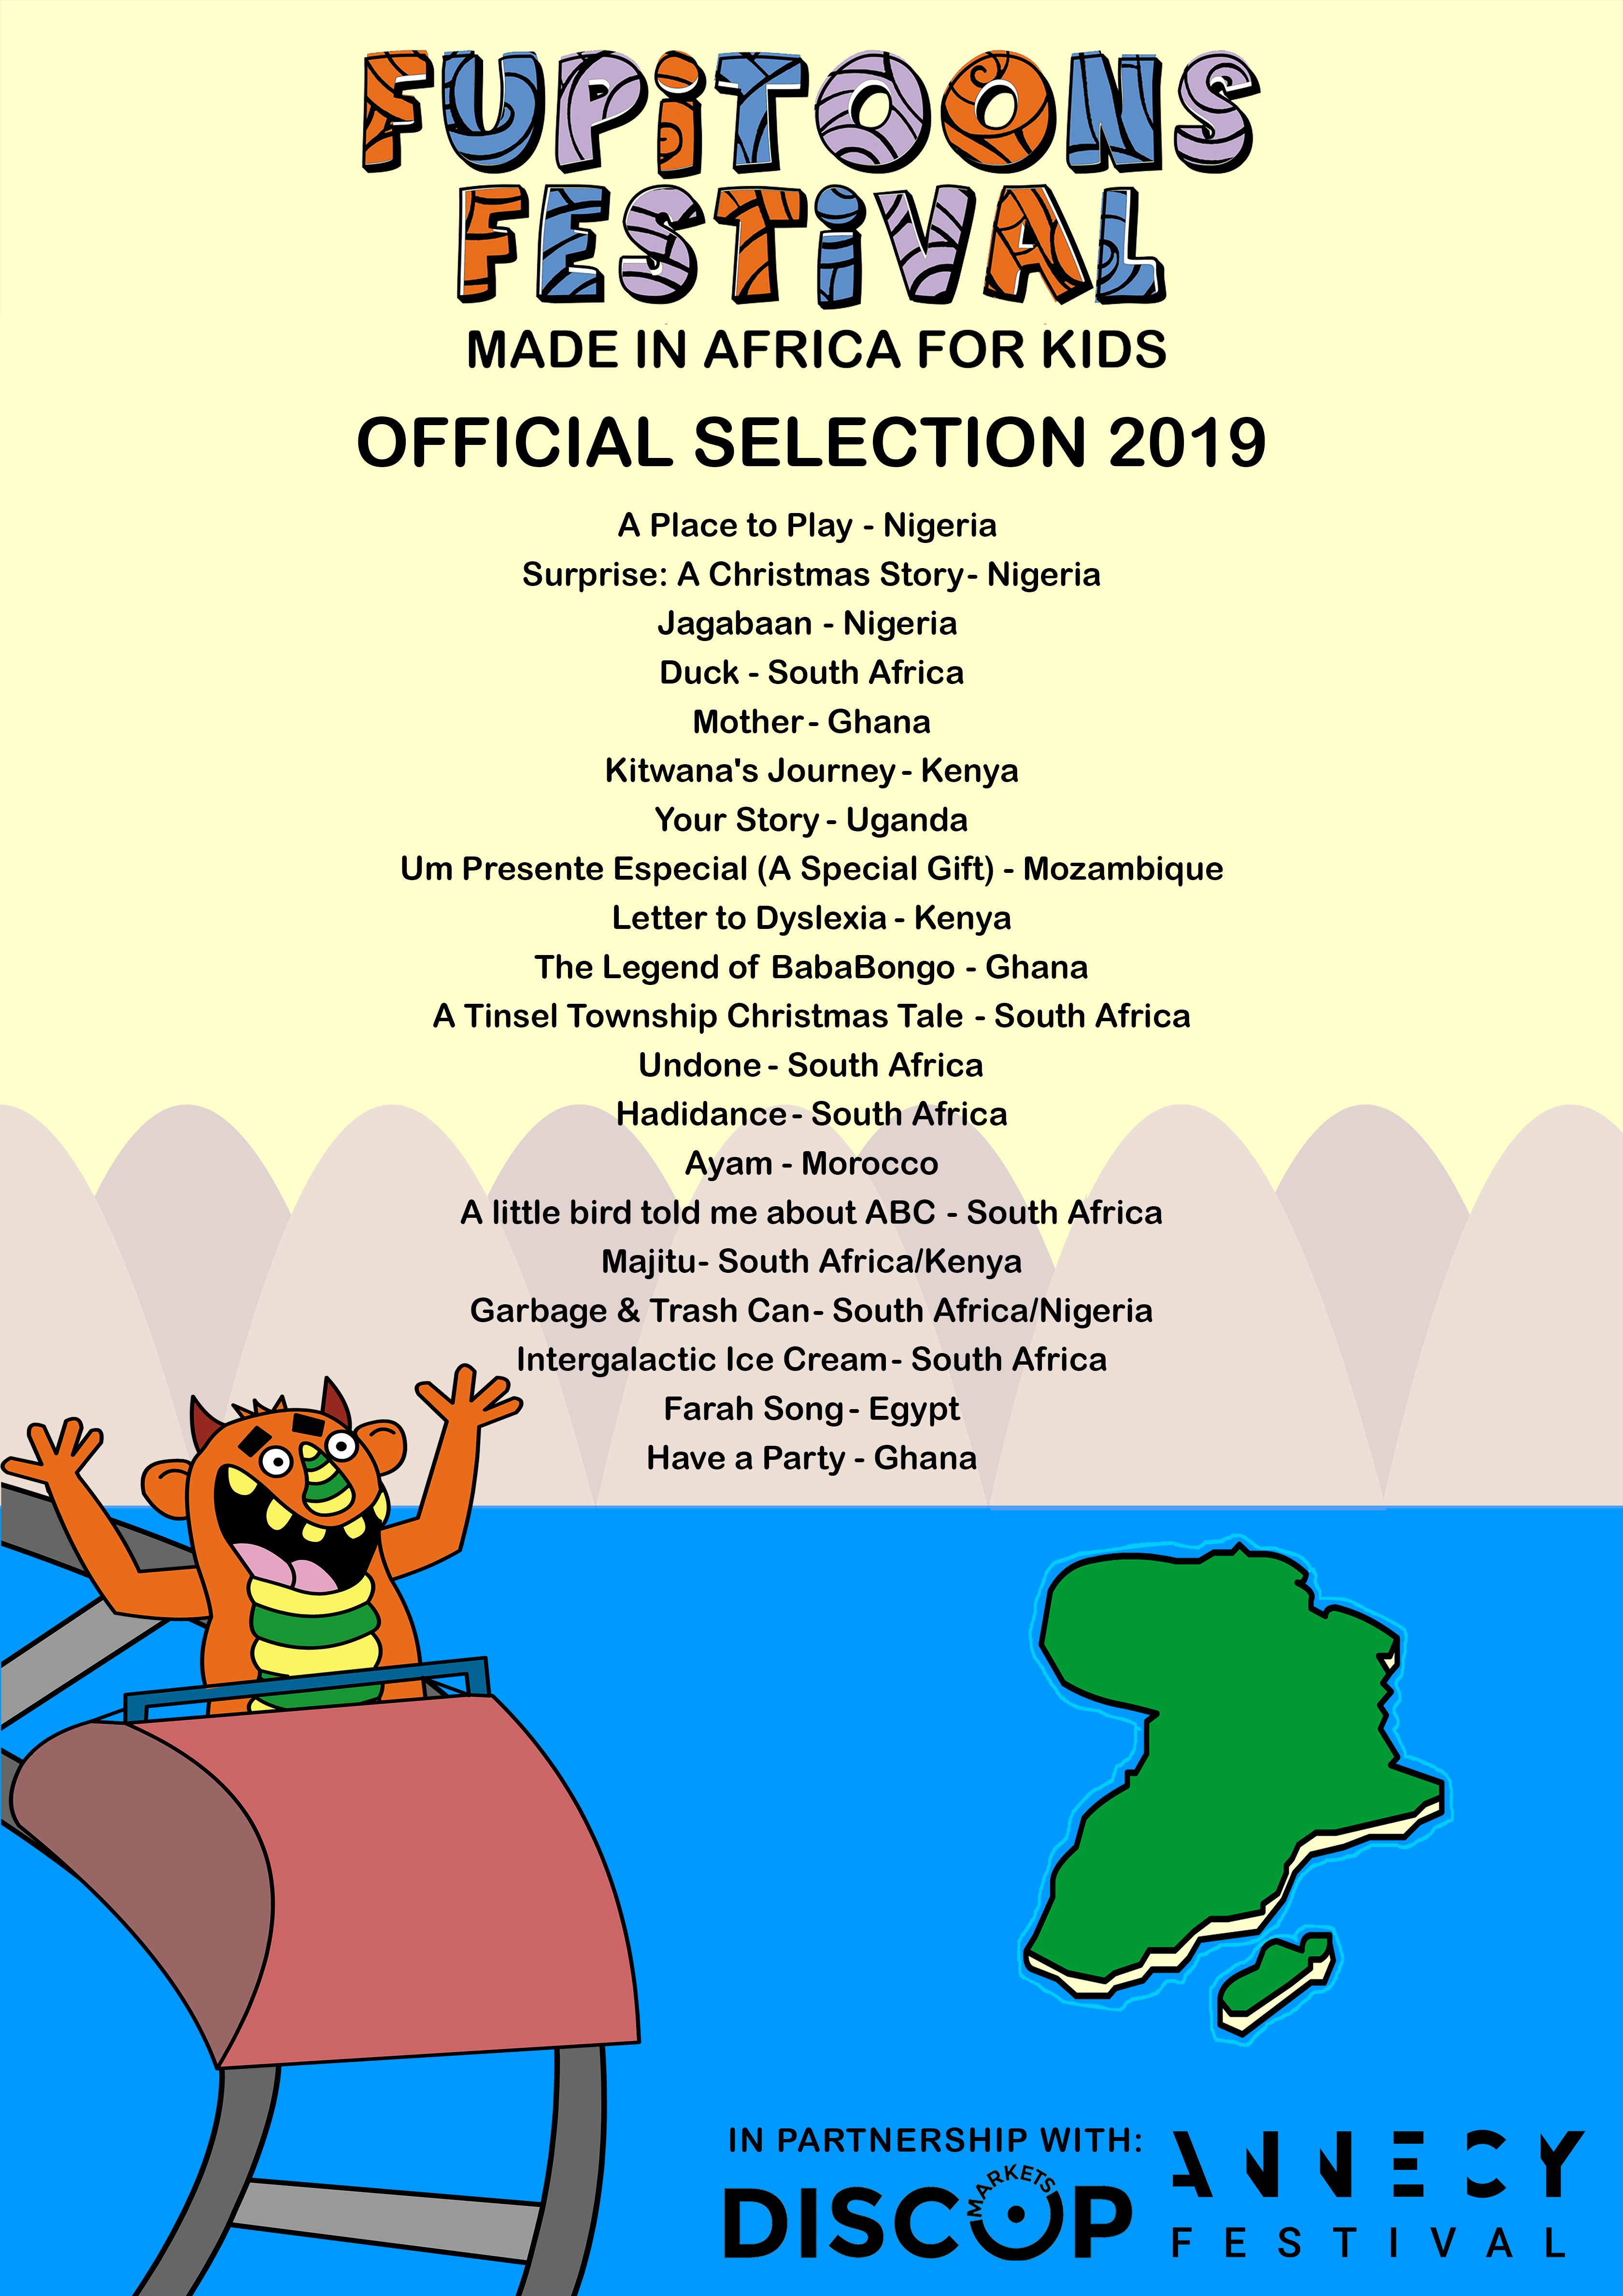 FUPiTOONS FESTiVAL 2019 OFFICIAL SELECTION